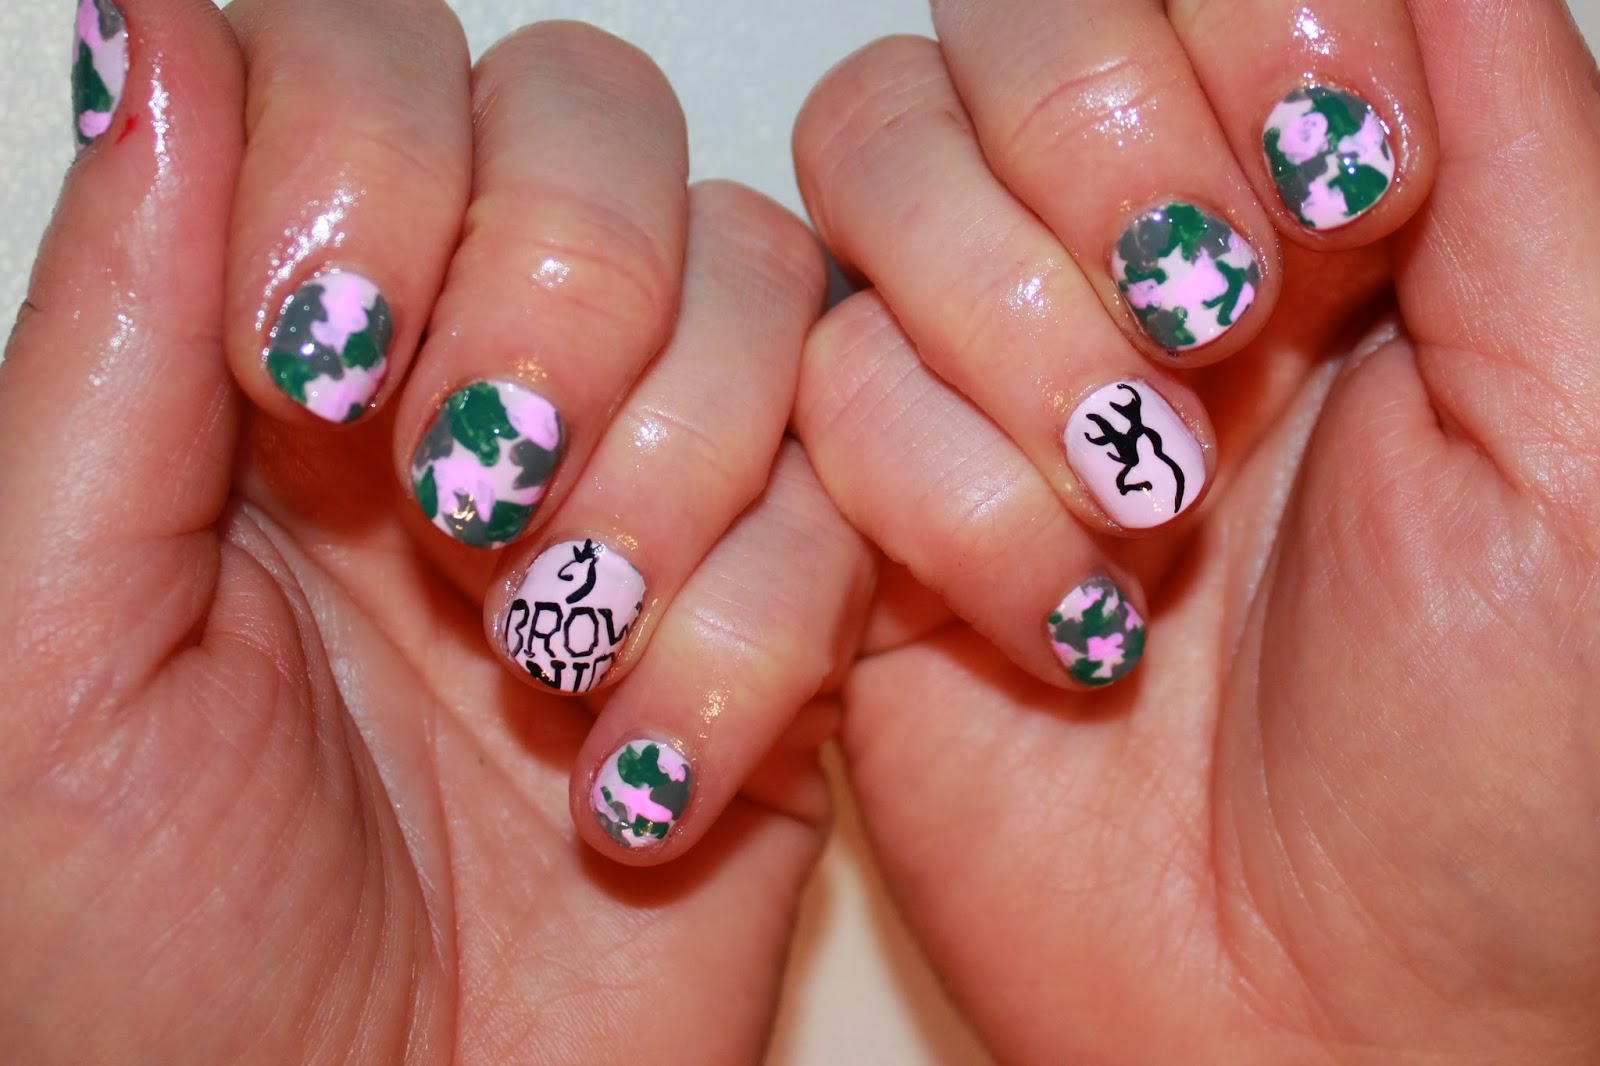 Pink camo nail designs nails gallery pink camo nail designs image prinsesfo Image collections